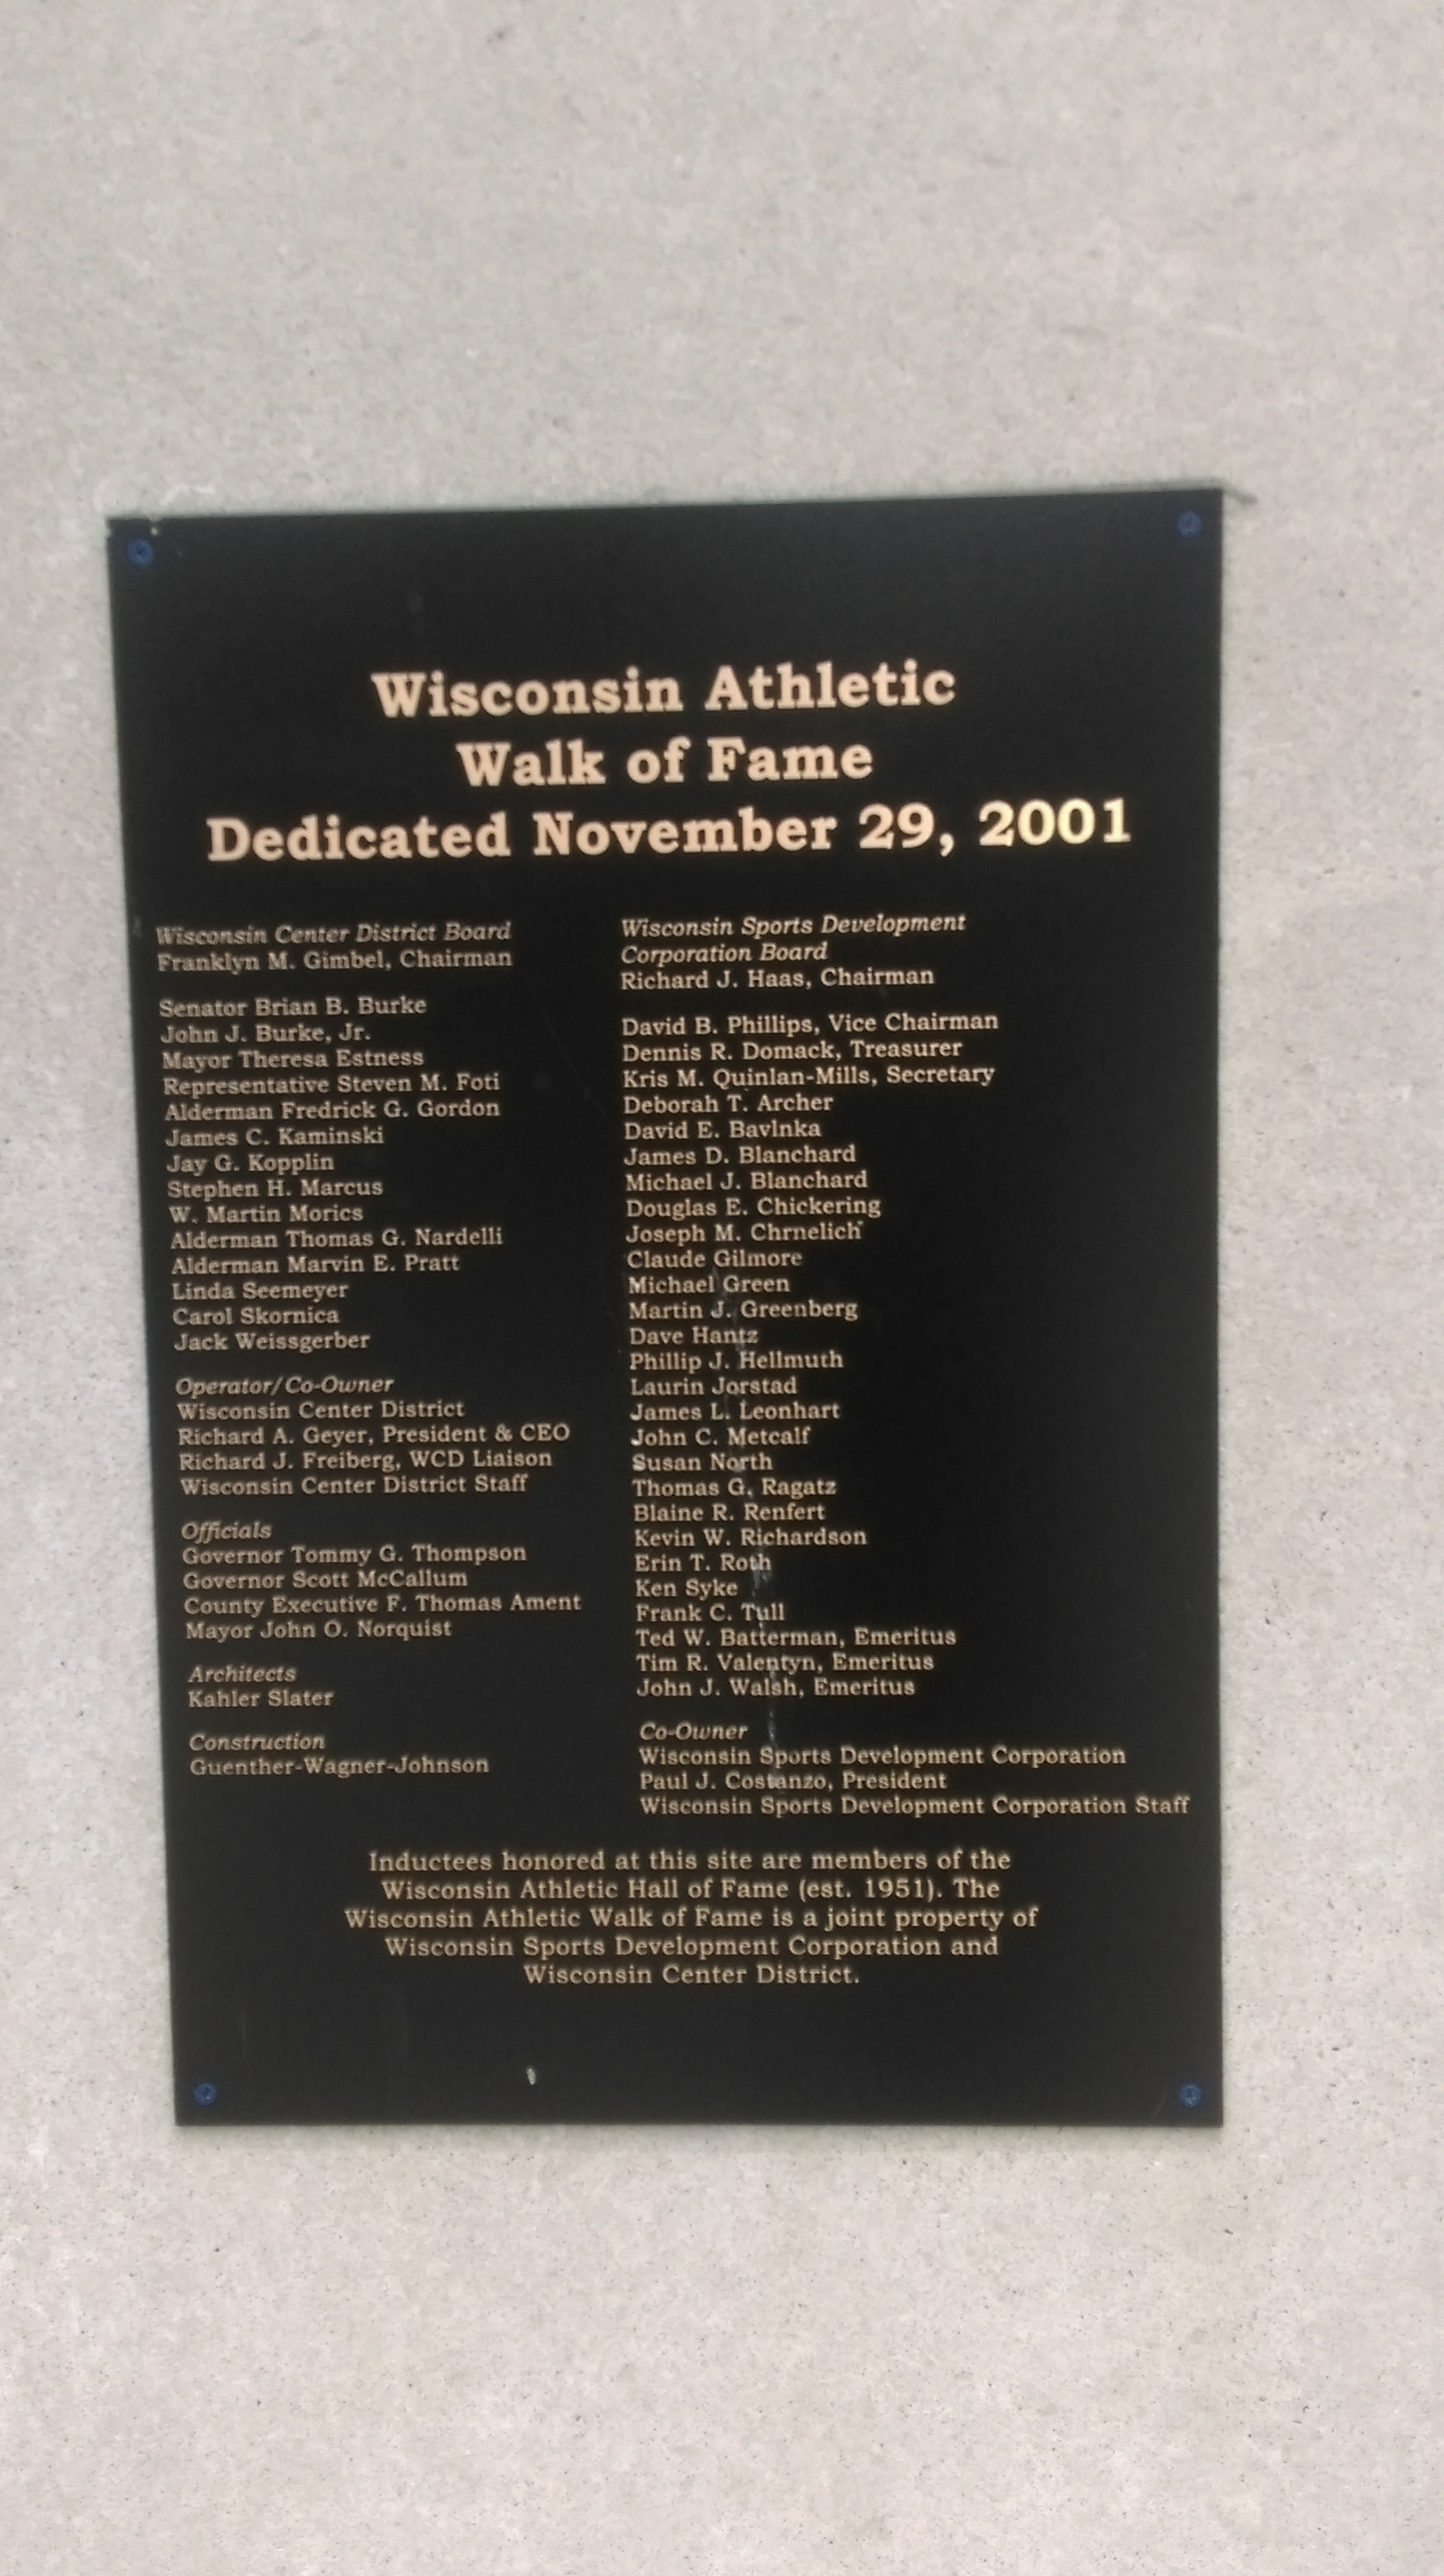 Wisconsin Athletic Walk of Fame Plaque